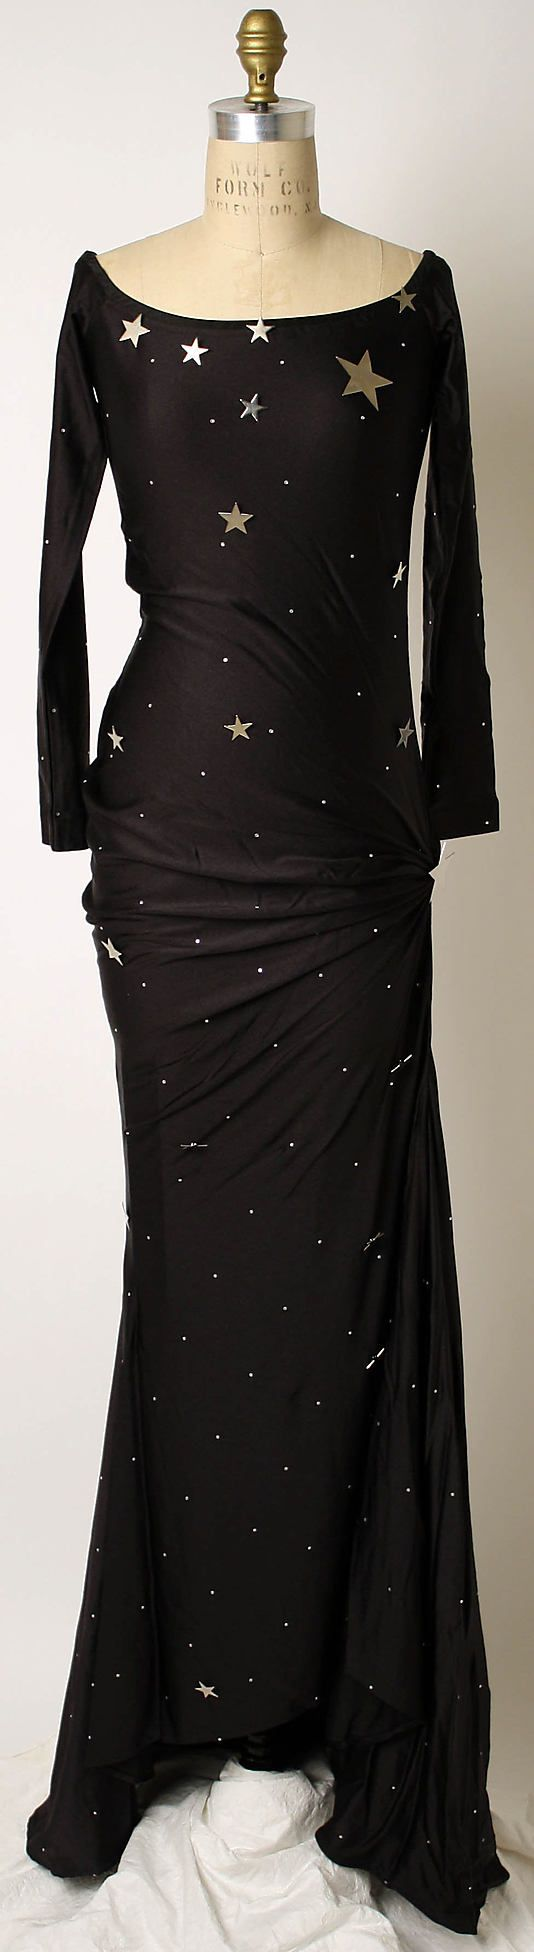 Gowns Pagan Wicca Witch:  Star-spangled evening #gown from one of the iconic 1980s designers. Patrick Kelly.